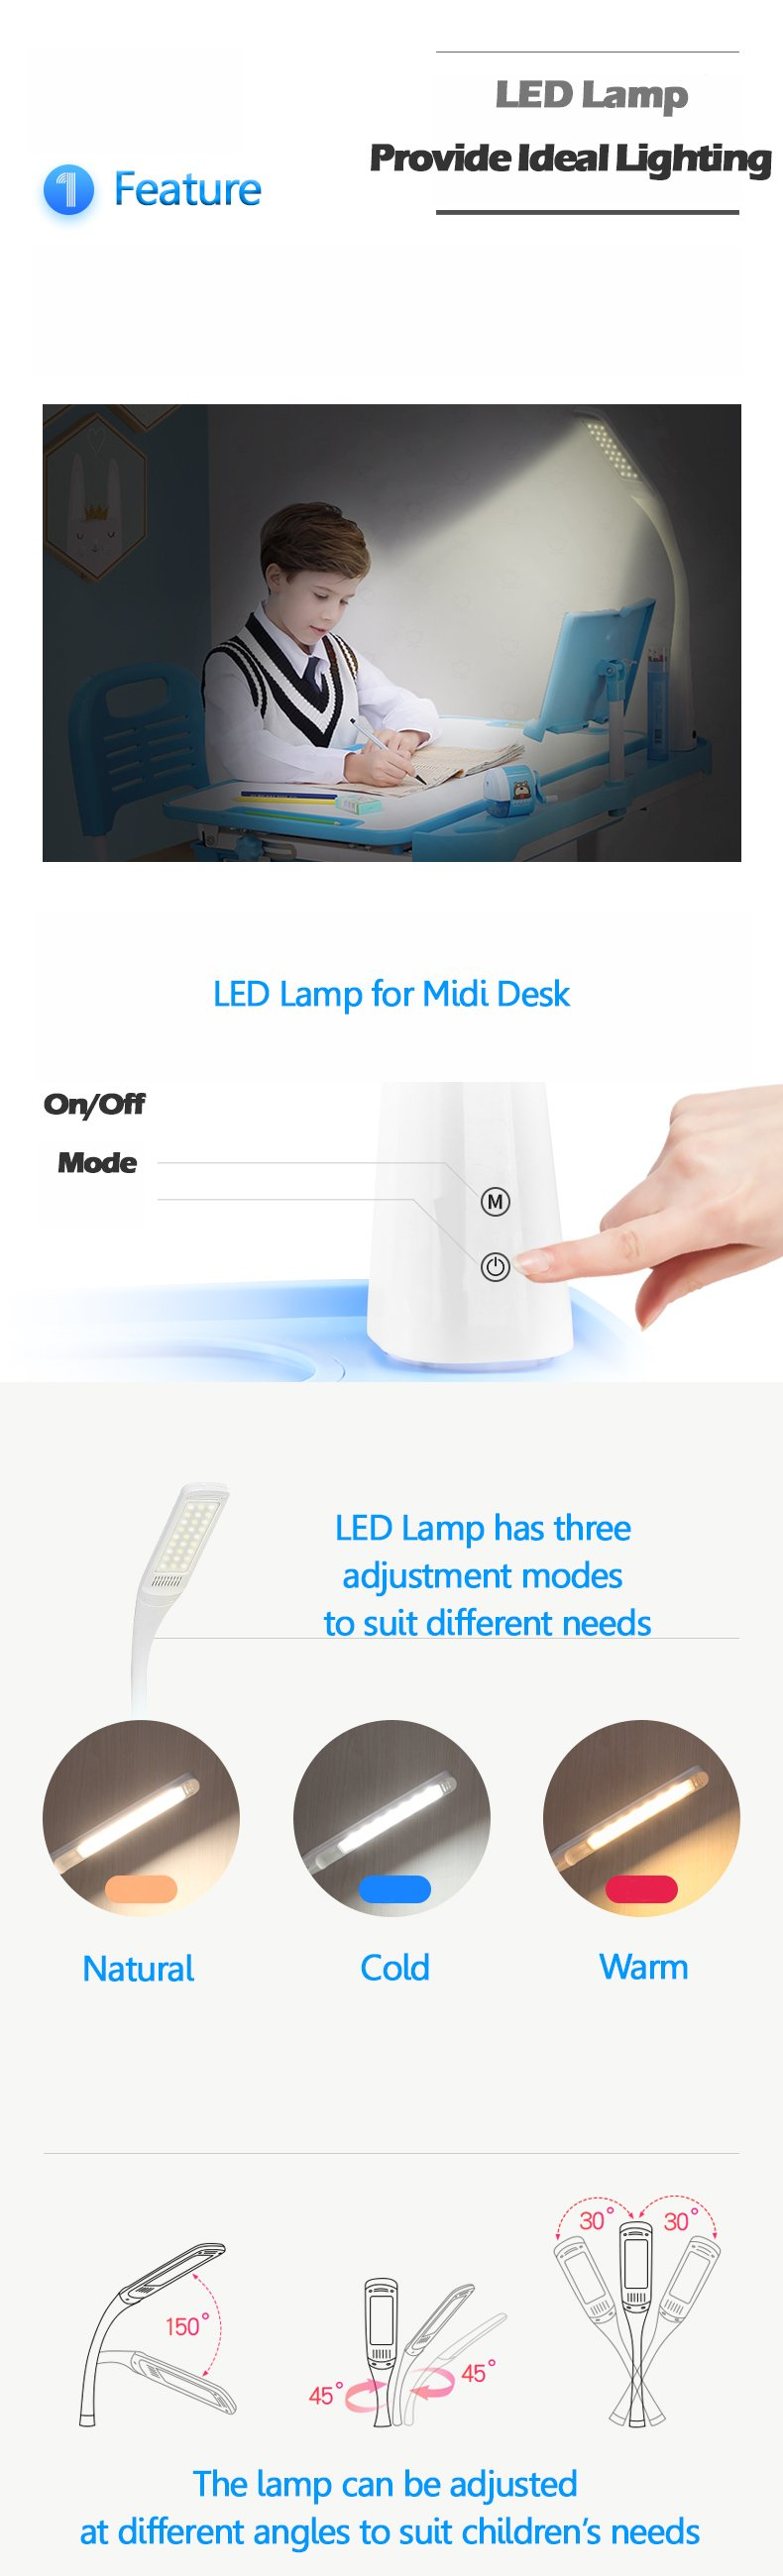 Best-Desk-Midi-2018-Model-Product-Descriptions-04